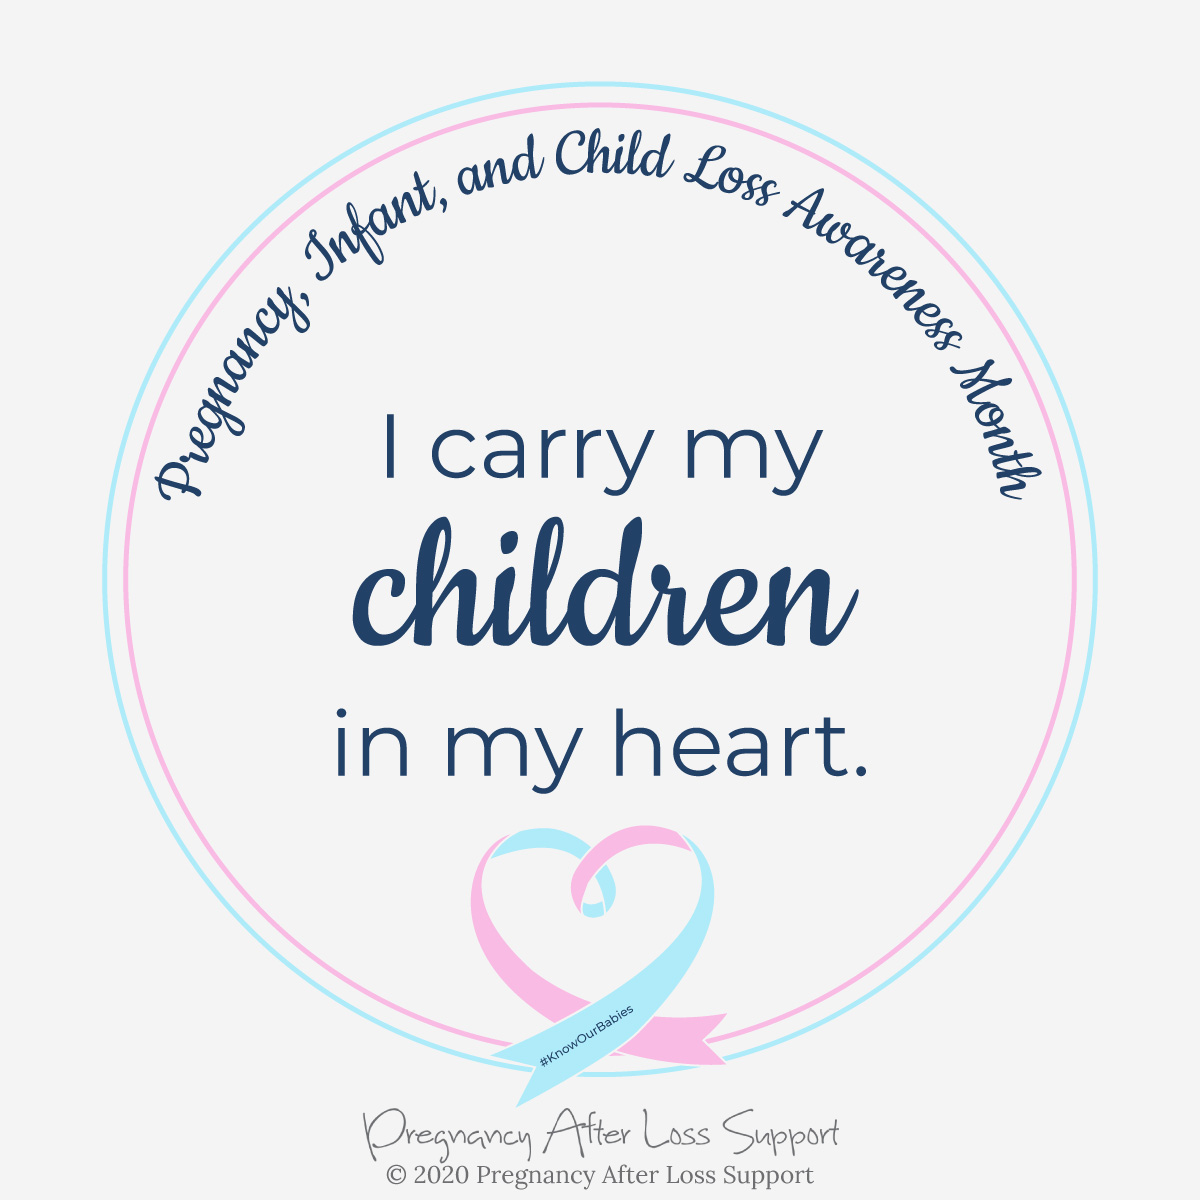 I carry my children in my heart - Pregnancy, Infant, and Child Loss Awareness Month